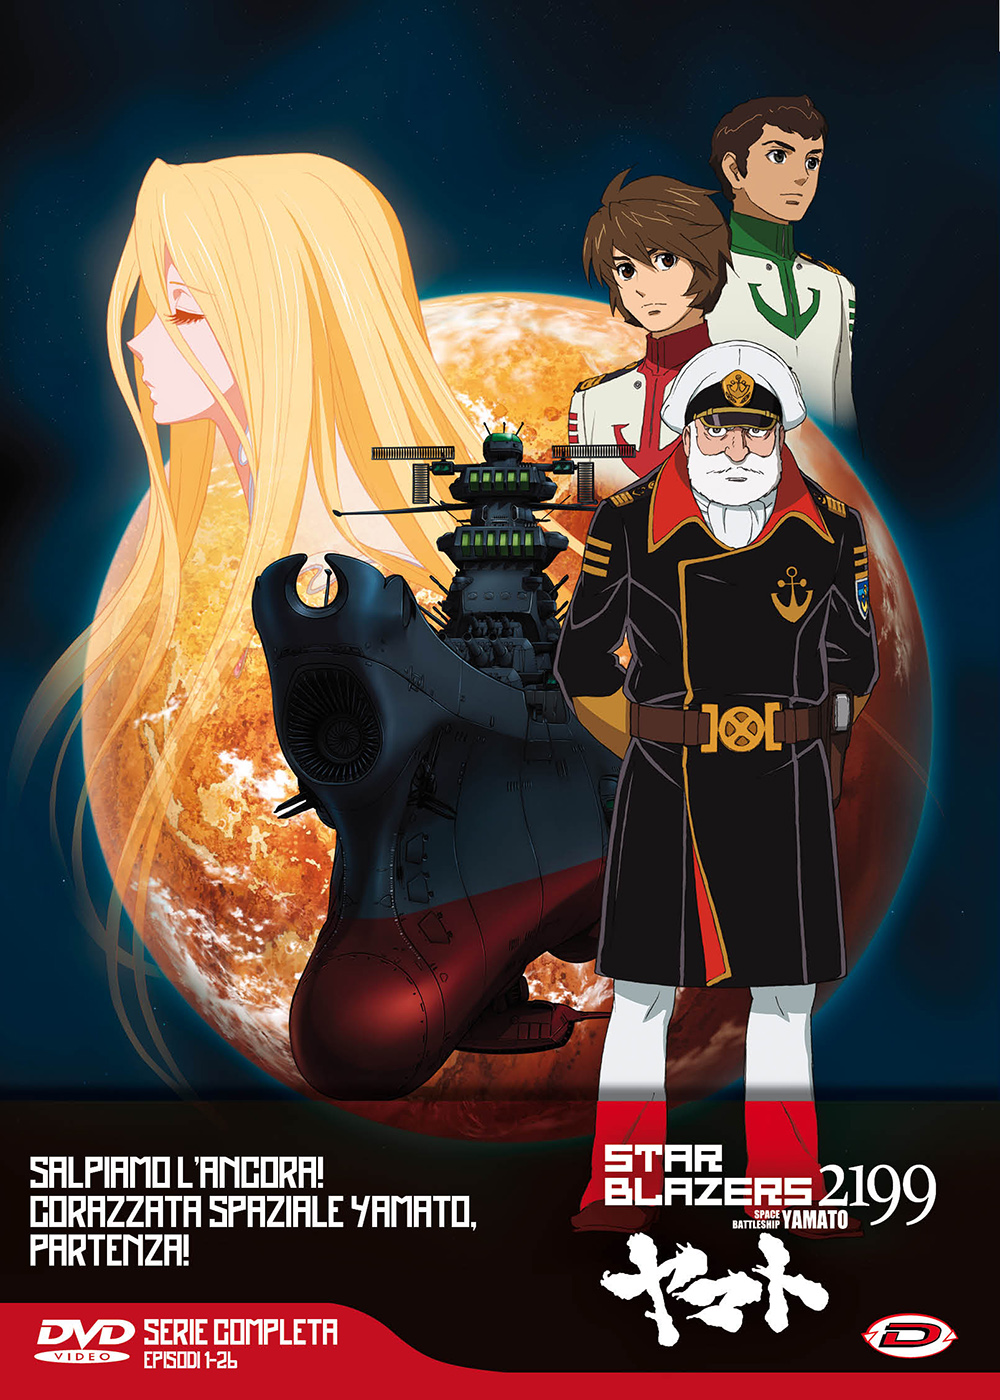 COF.STAR BLAZERS 2199 - THE COMPLETE SERIES (EPS 01-26) (4 DVD)